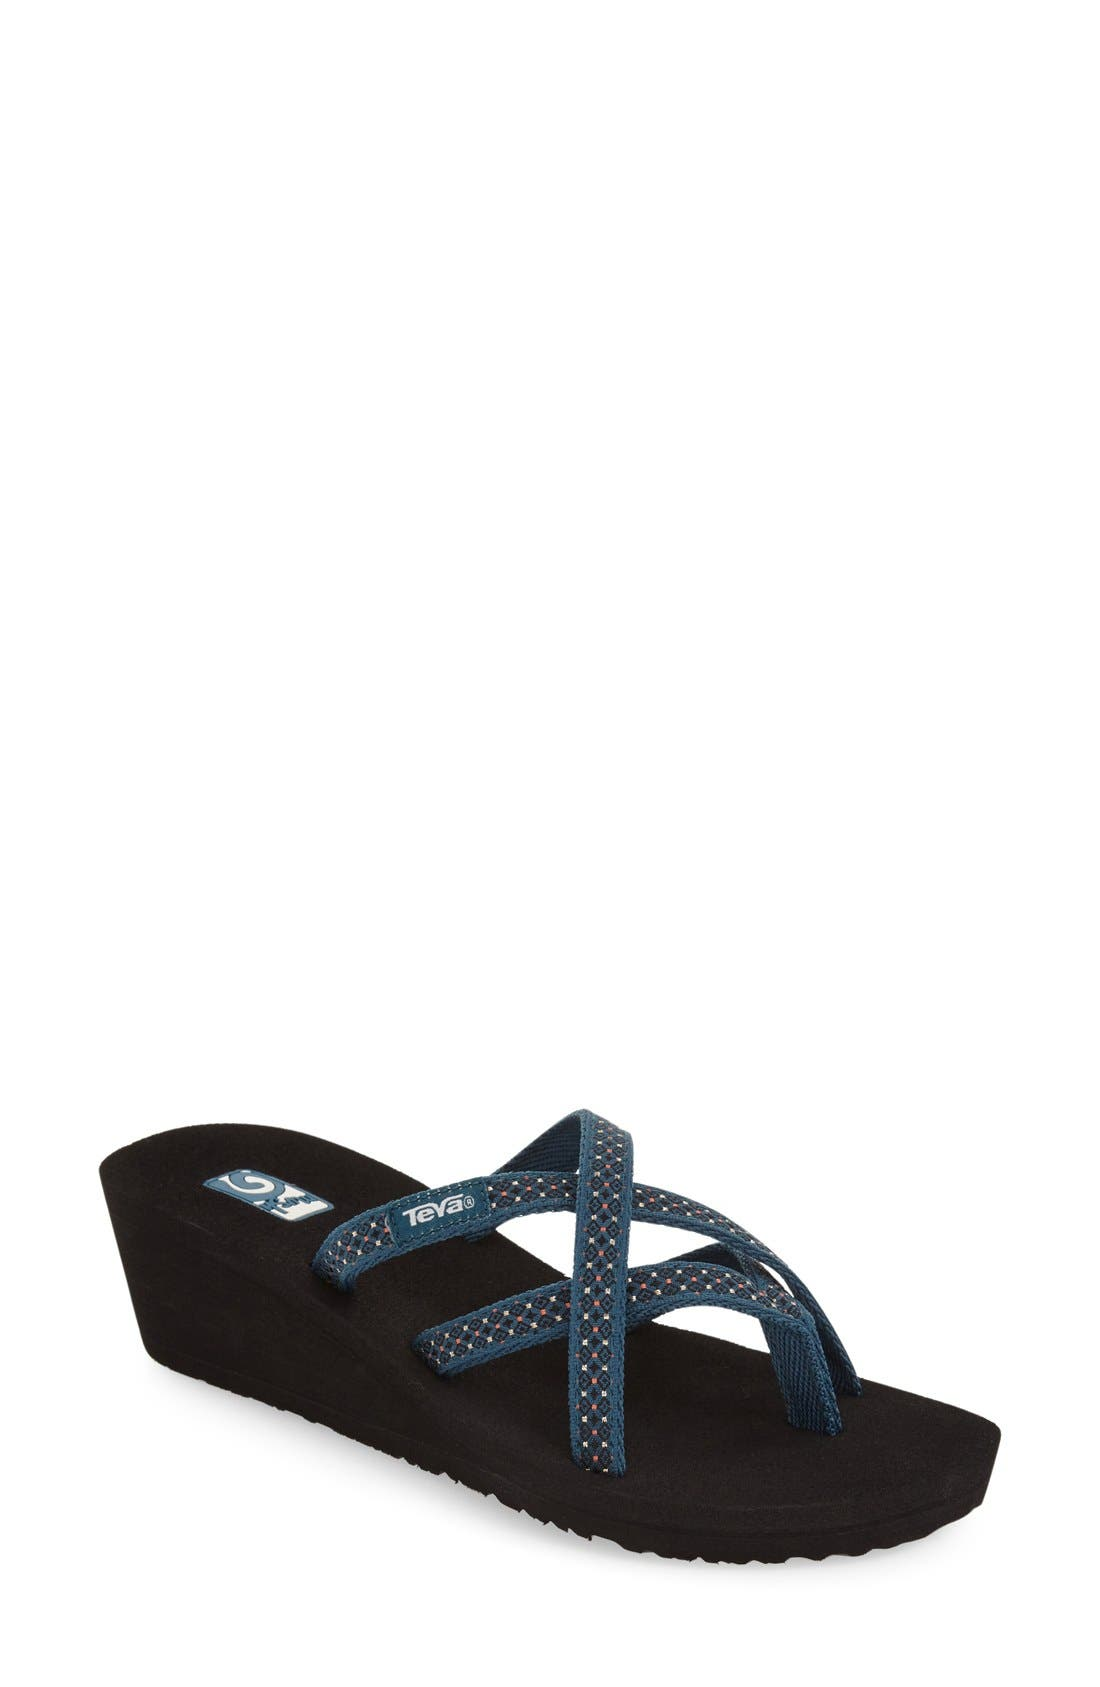 Alternate Image 1 Selected - Teva 'Mandalyn' Wedge Sandal (Women)